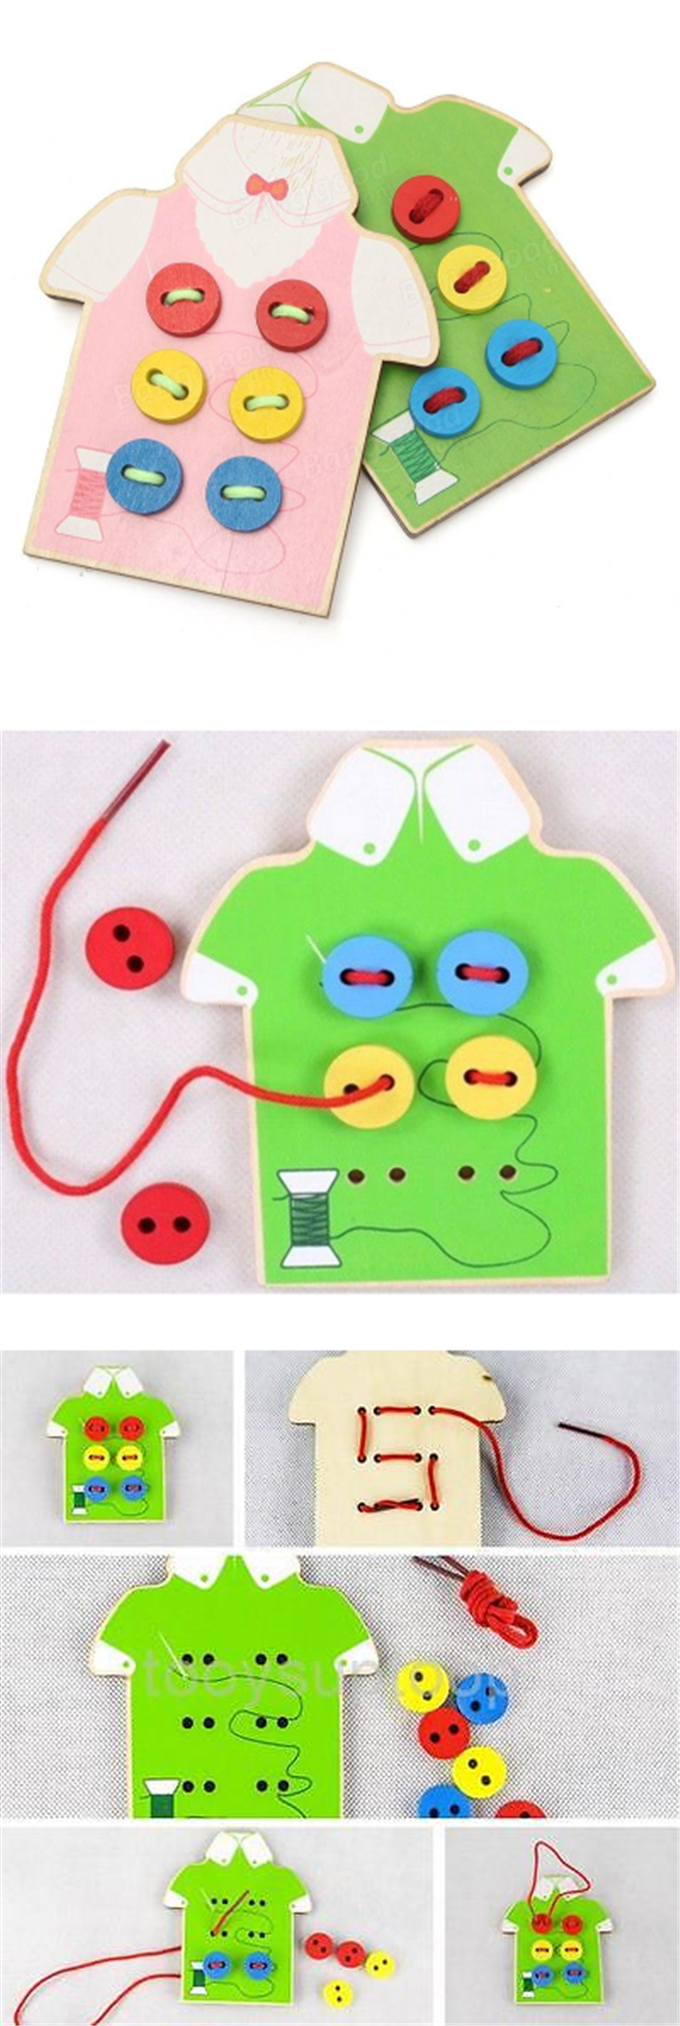 Little B House Wooden String Clasp Threading Button Up Board Game Montessori Early Education